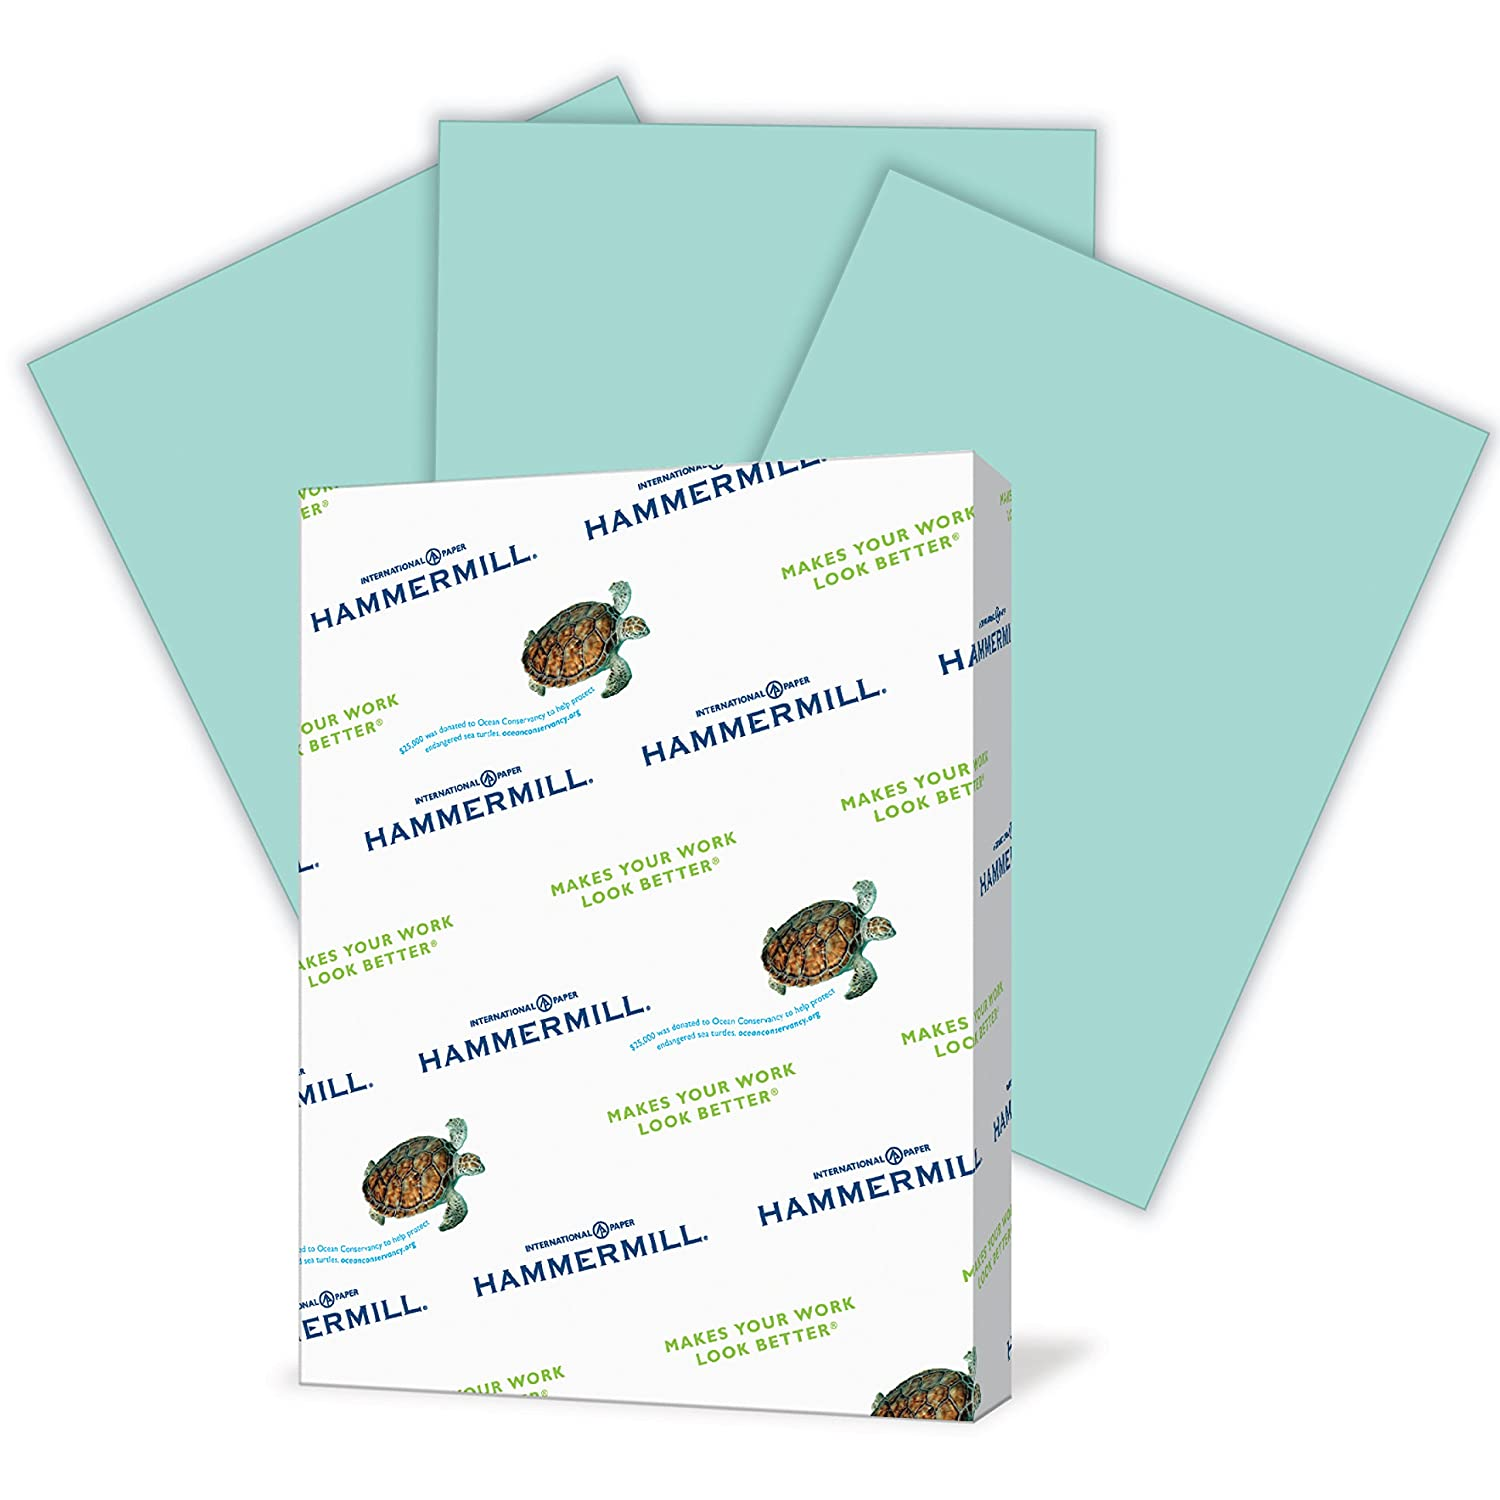 Hammermill Printer Paper, Colors Turquoise, 20lb, 8.5 x 11, Letter - 1 Pack / 500 Sheets (103820R)